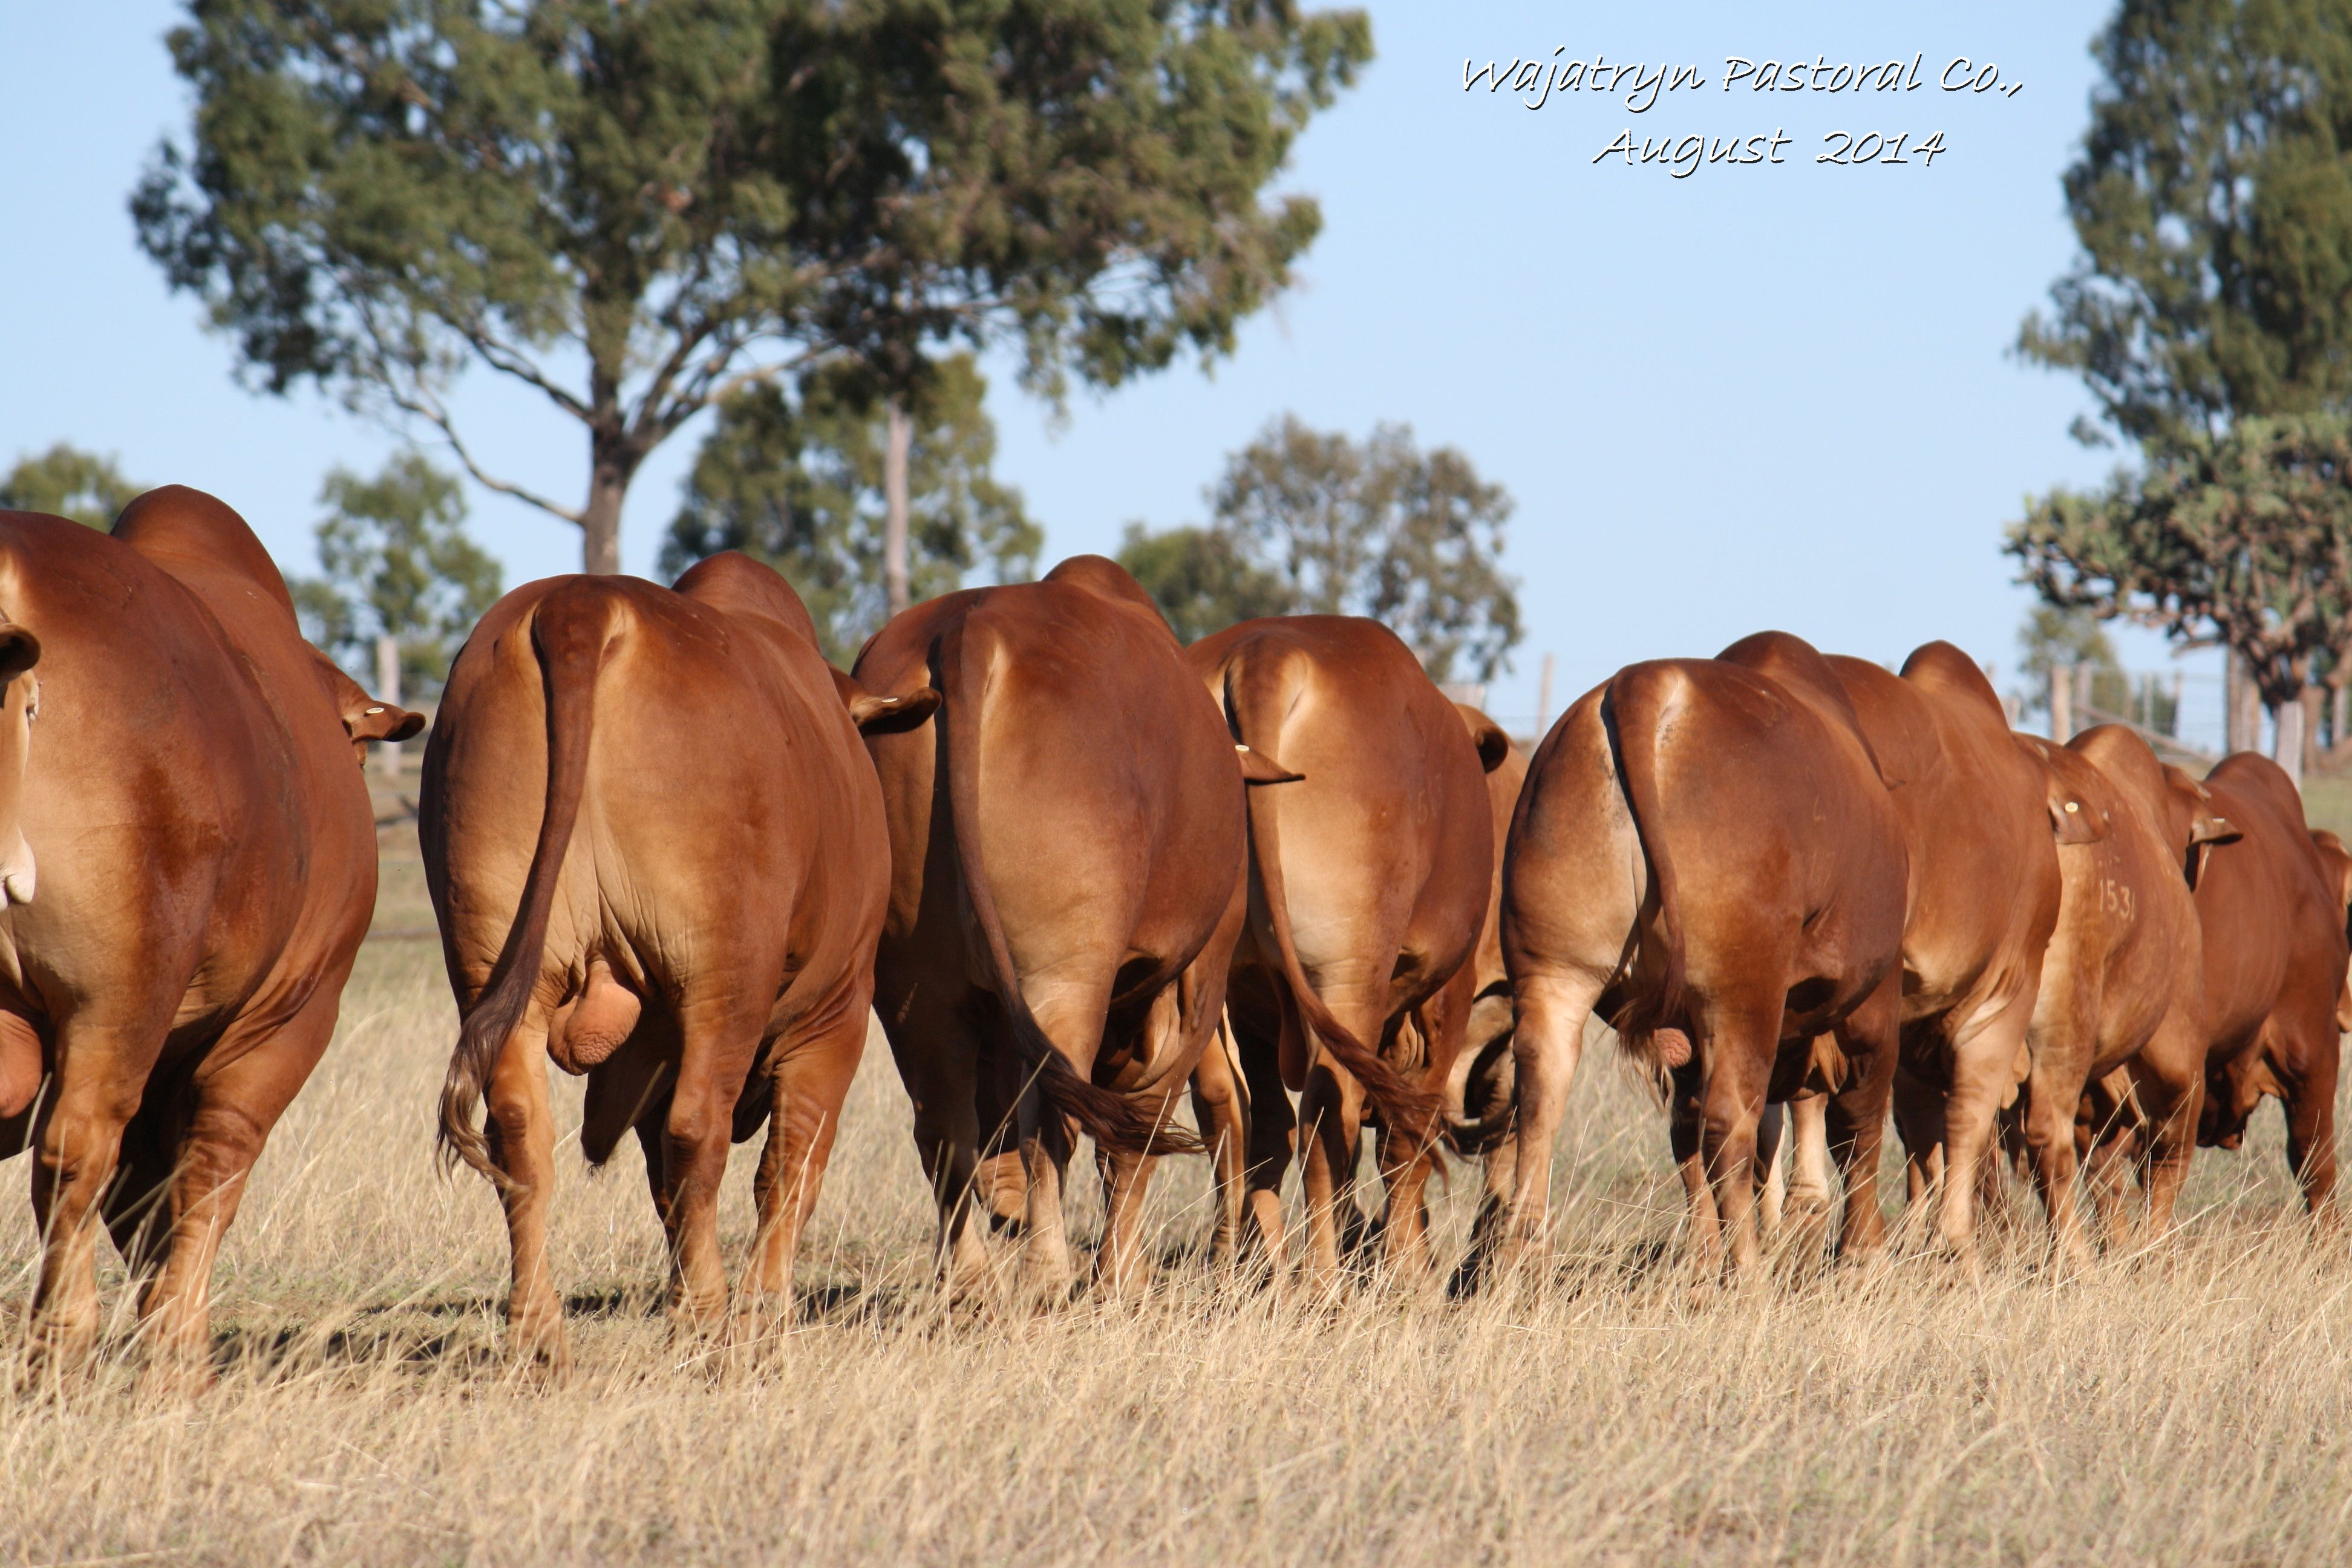 Bulls for sale from 2014